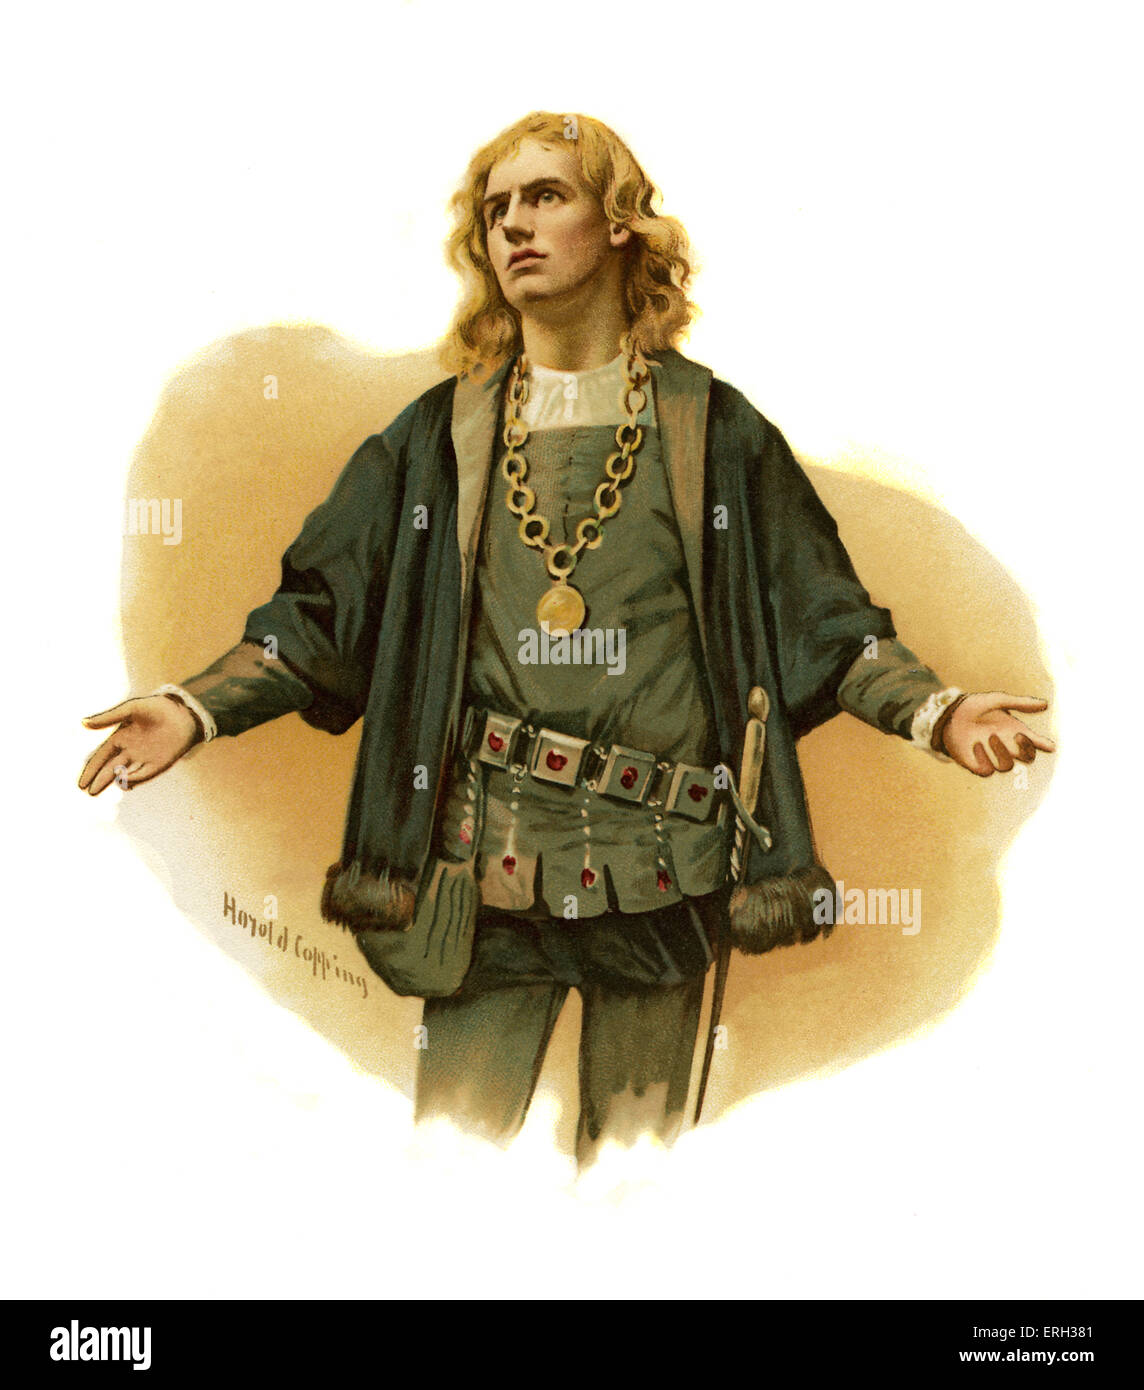 Hamlet, Prince of Denmark by William Shakespeare. Illustration by Harold Copping. English poet and playwright baptised - Stock Image